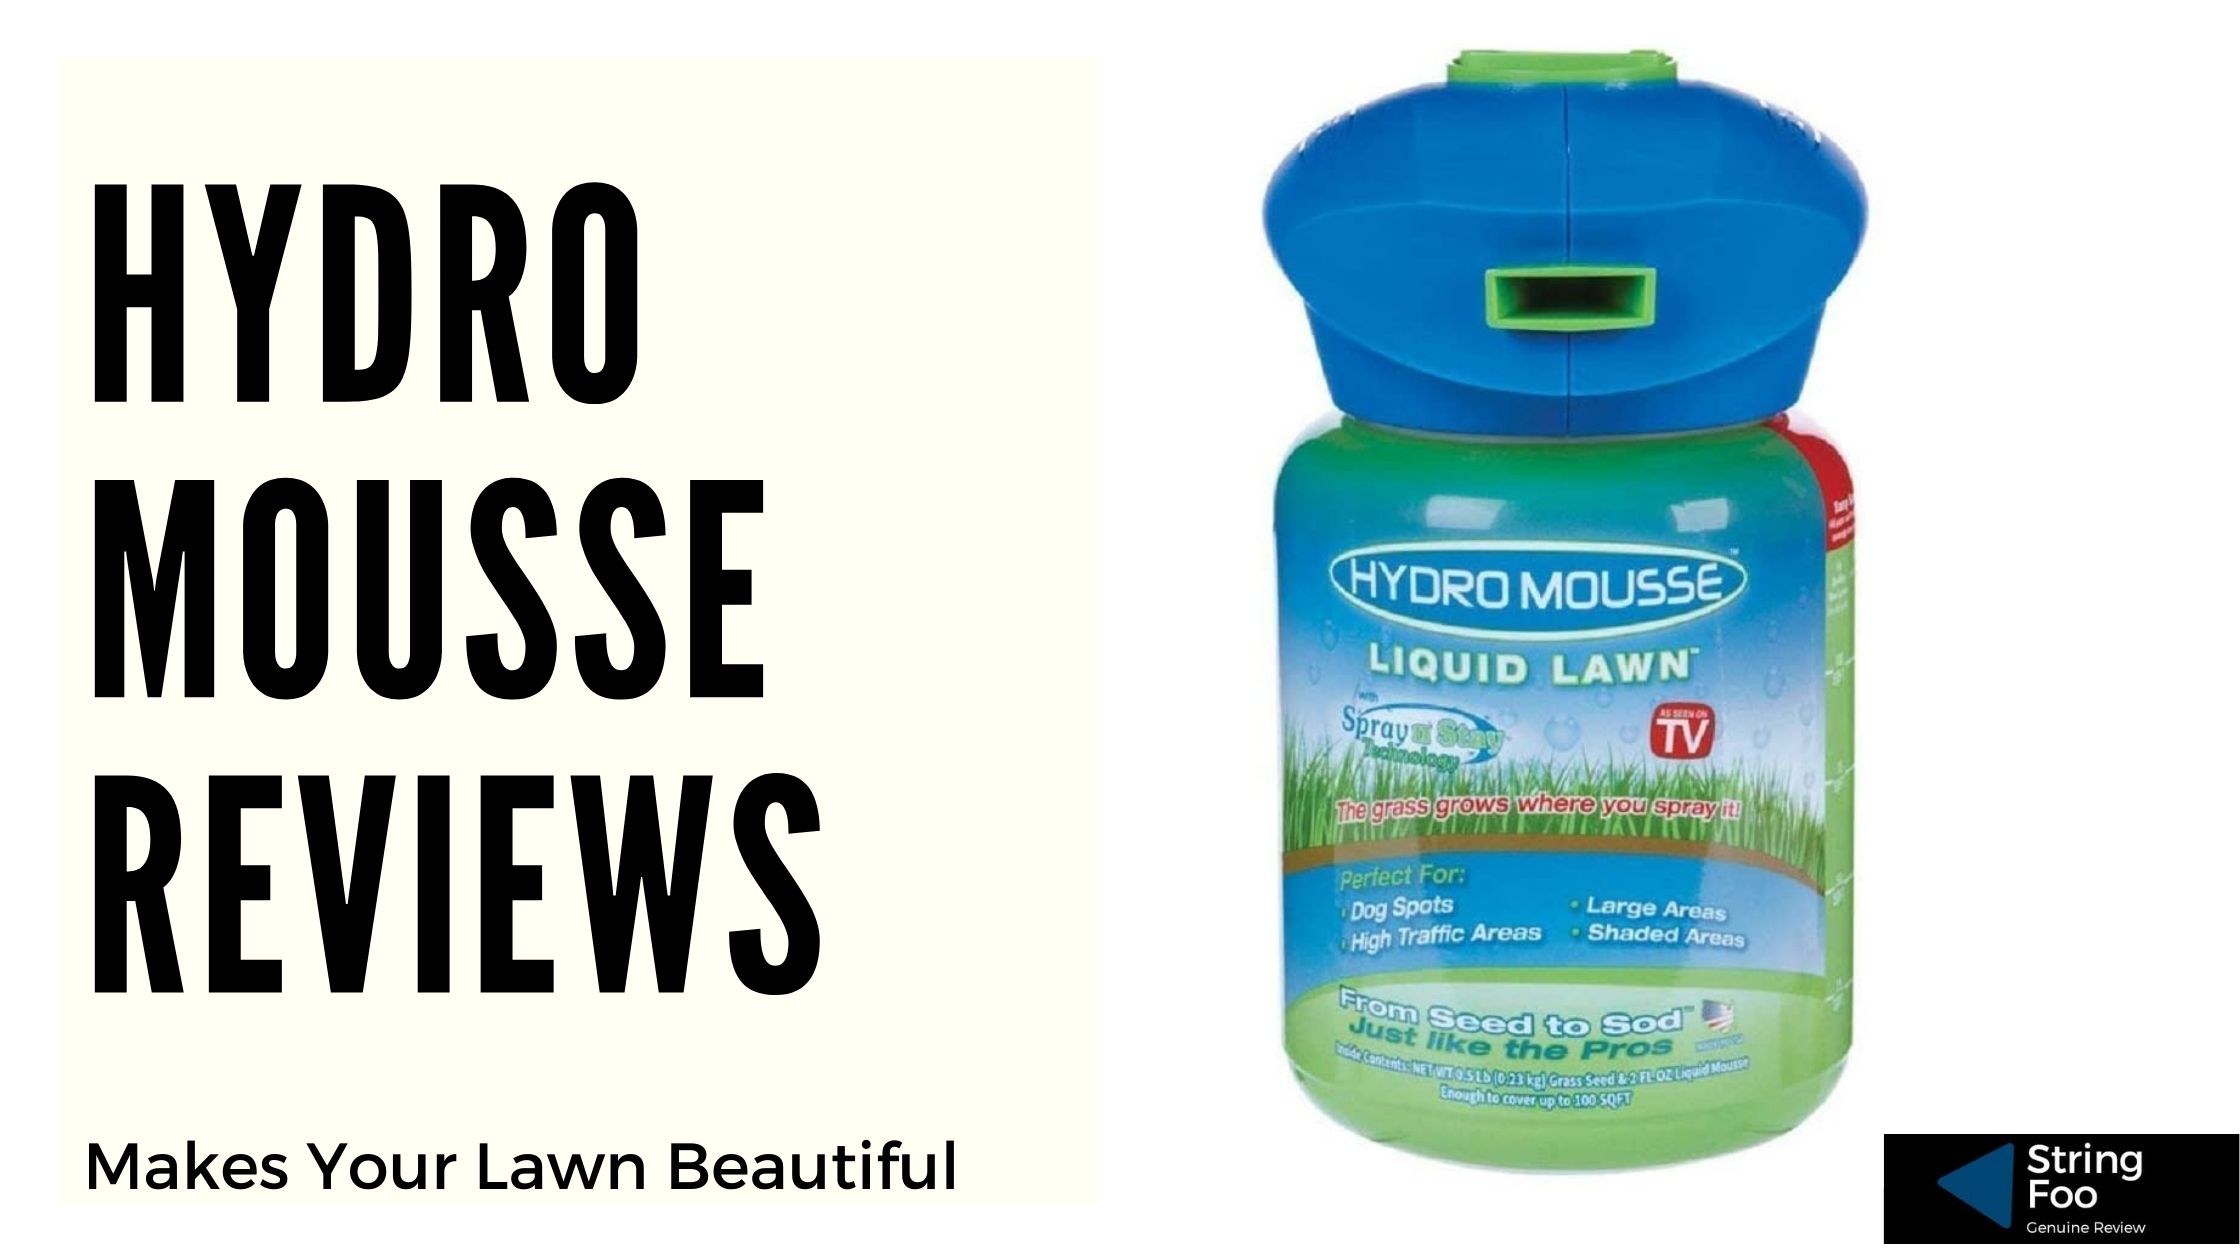 Hydro Mousse Reviews